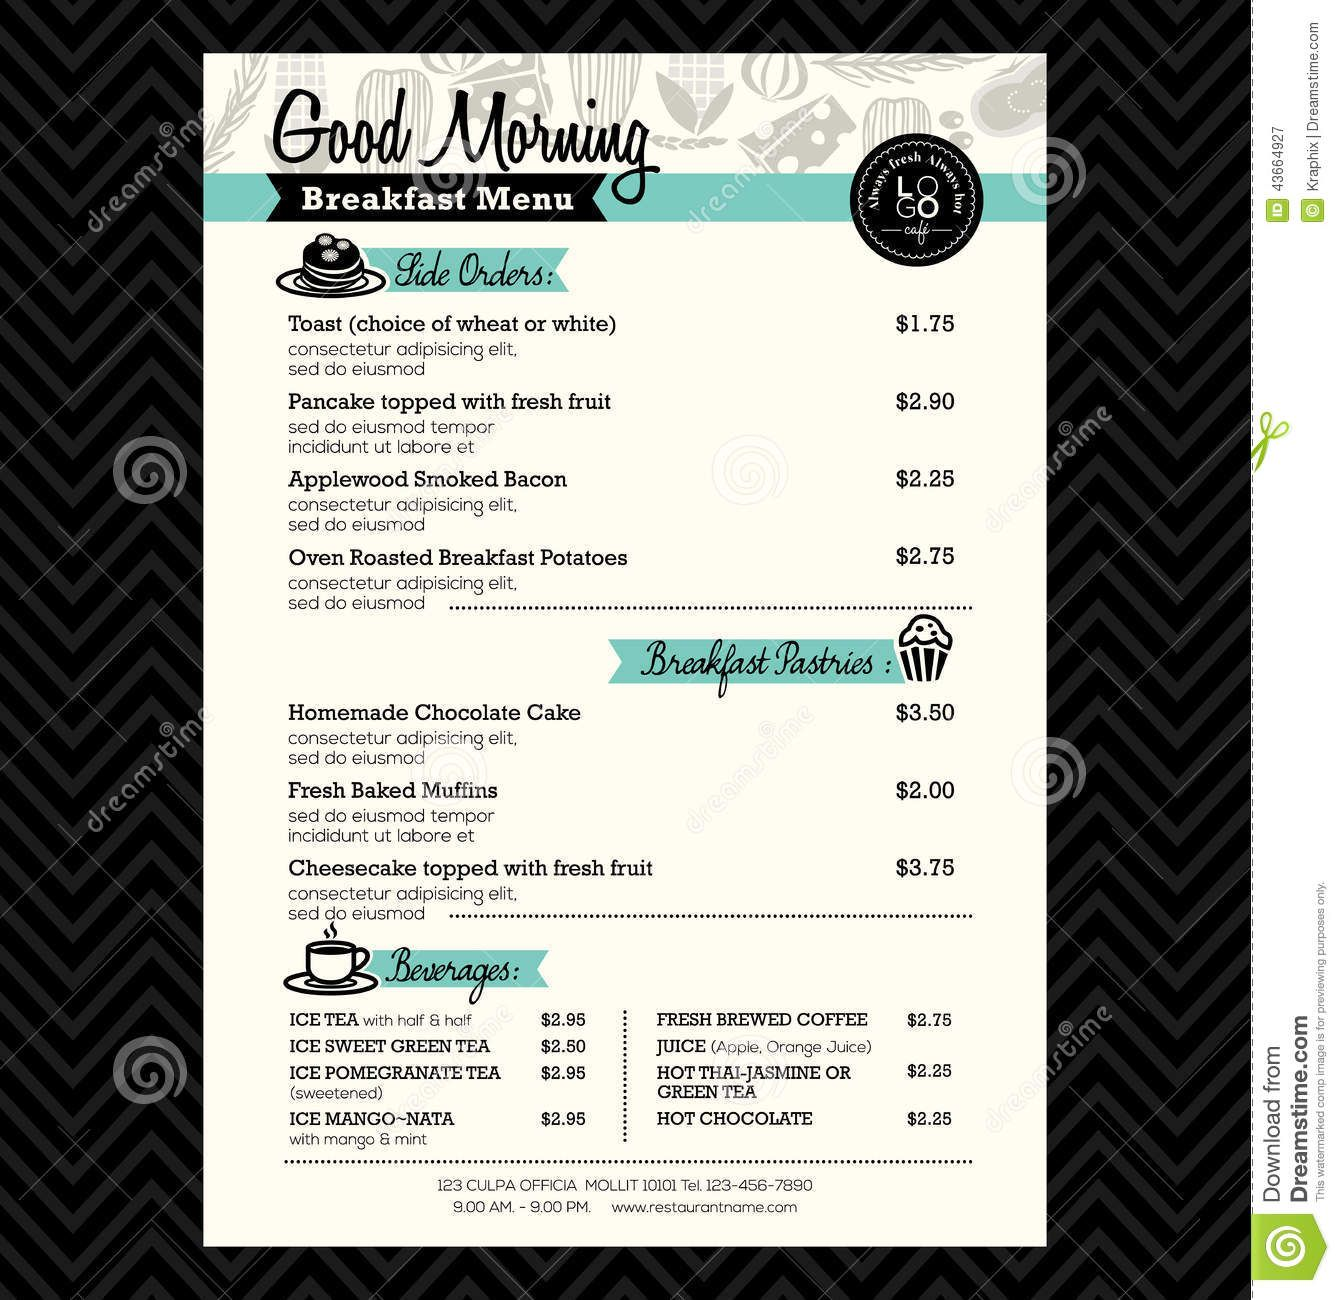 Breakfast menu design ideas google search